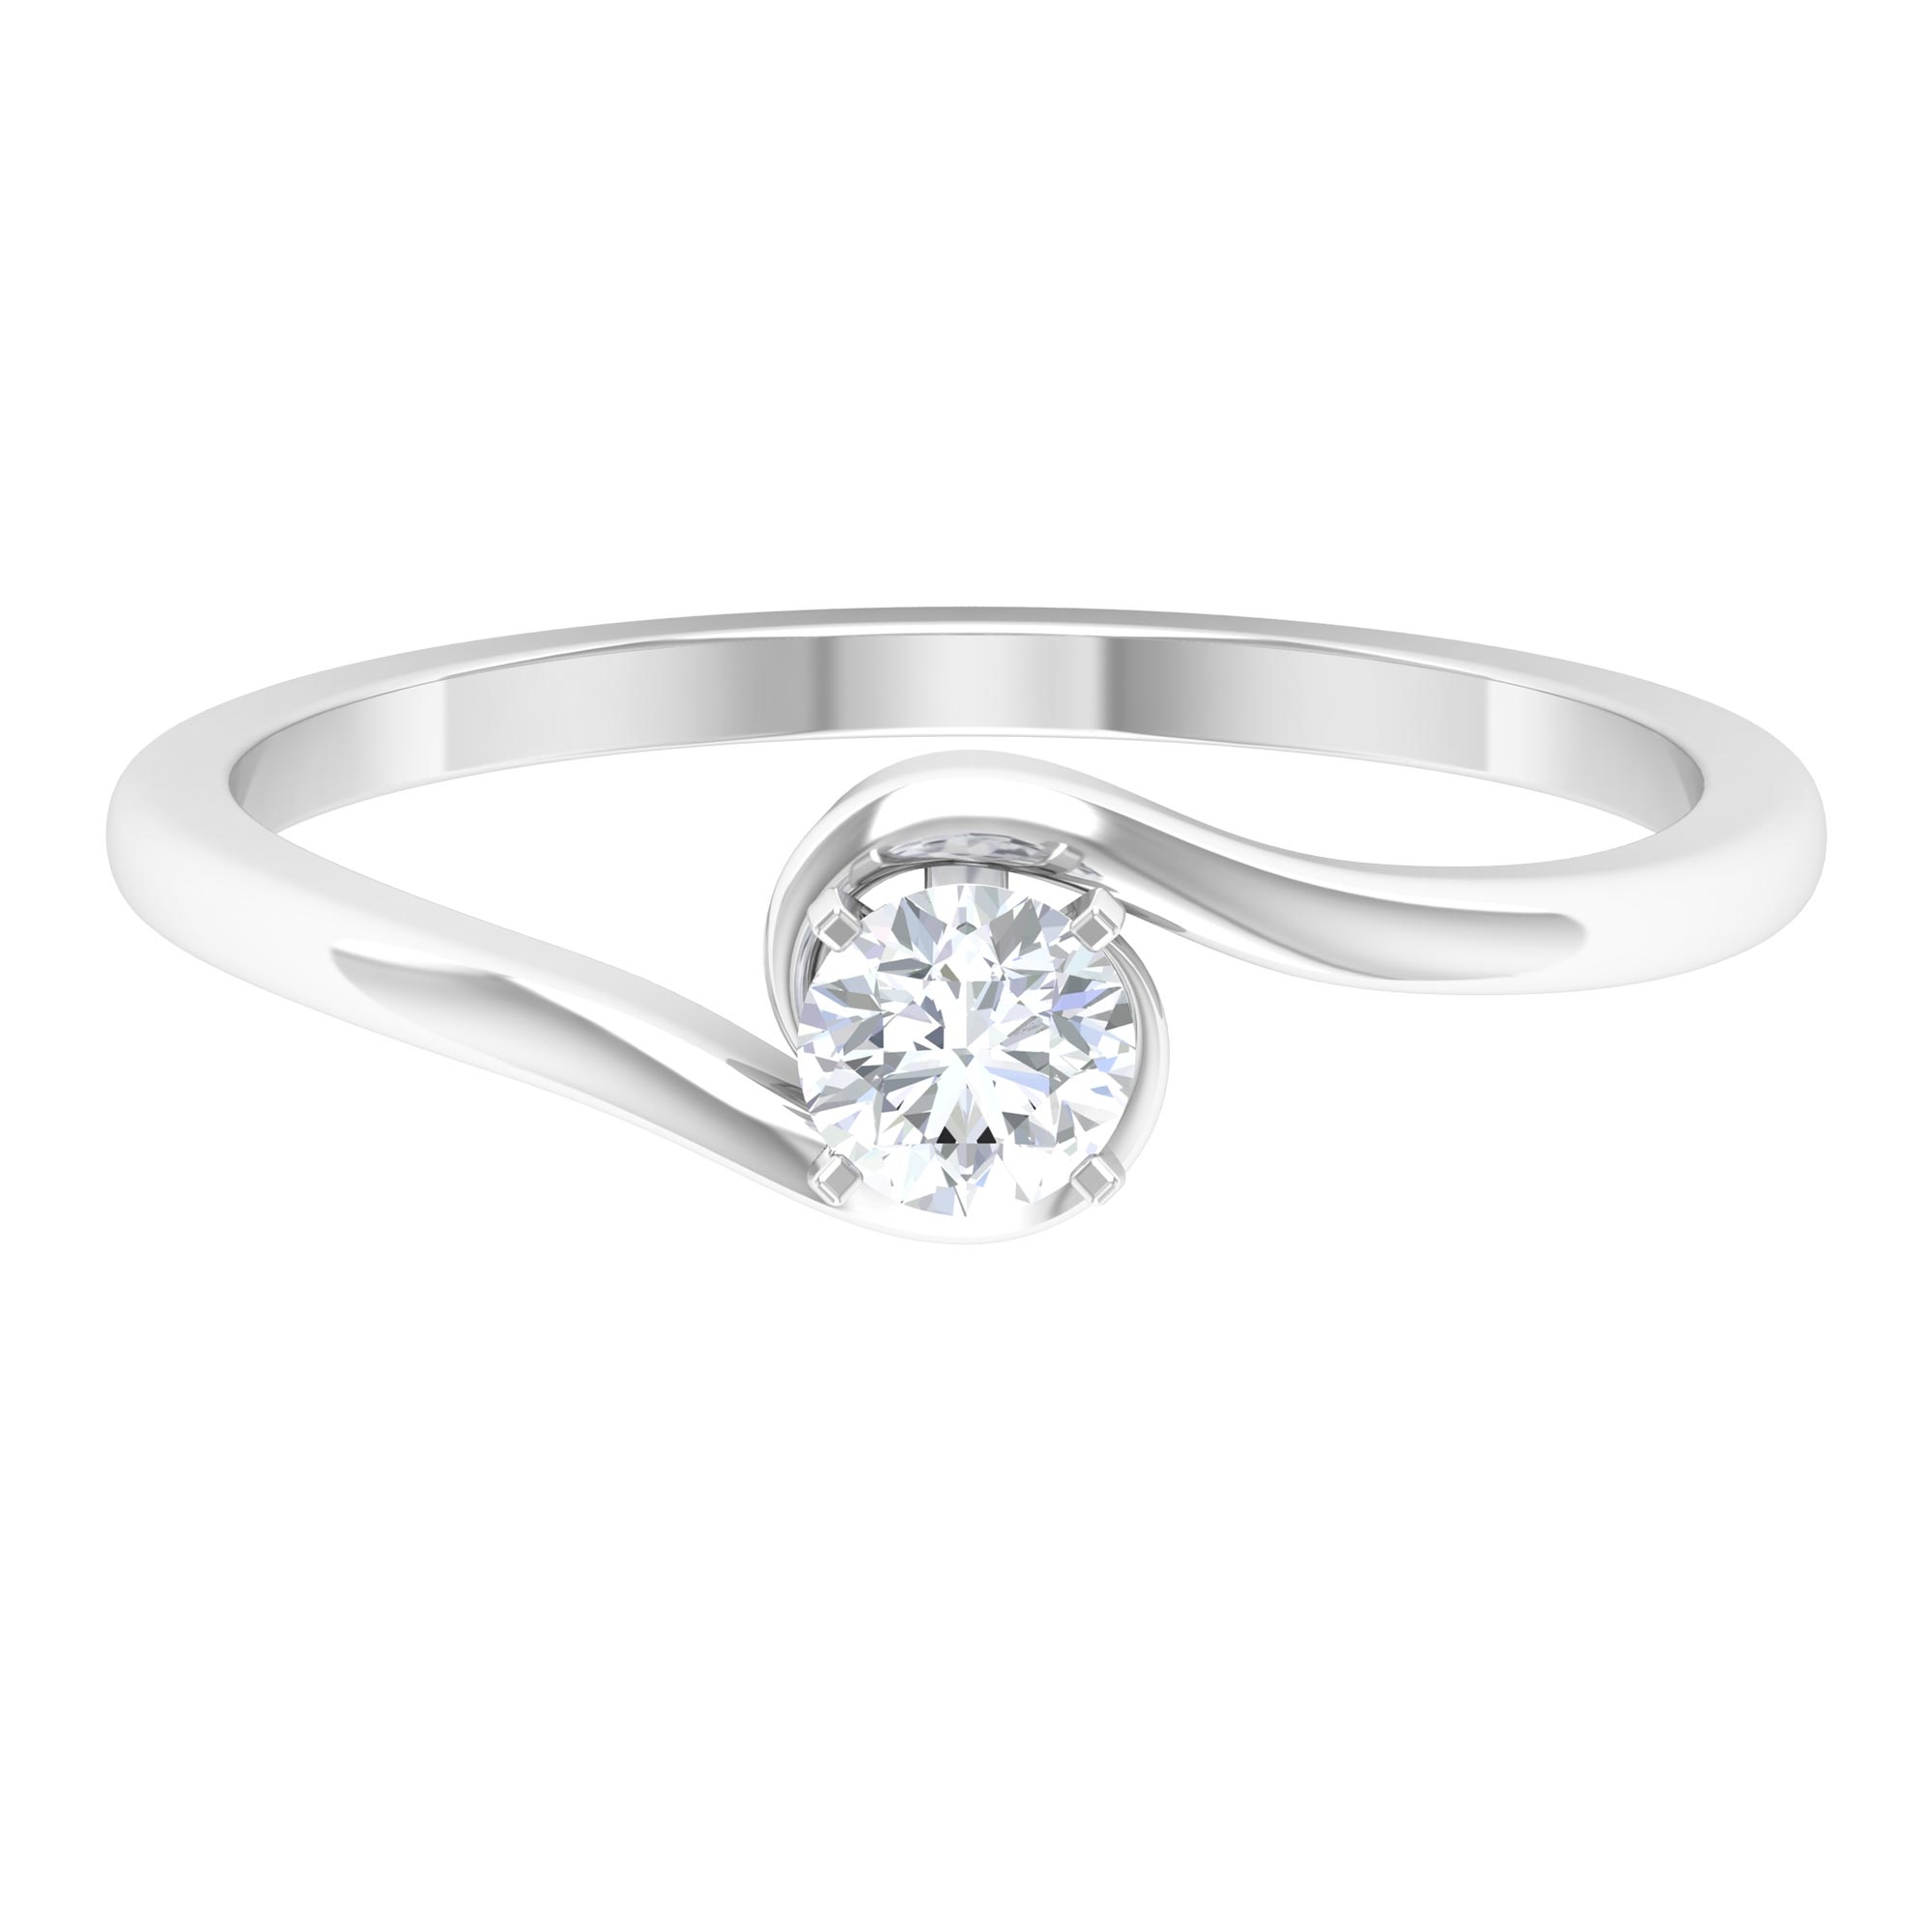 4 MM Round Cut Diamond Solitaire Ring in Peg Head Setting with Bypass Shank